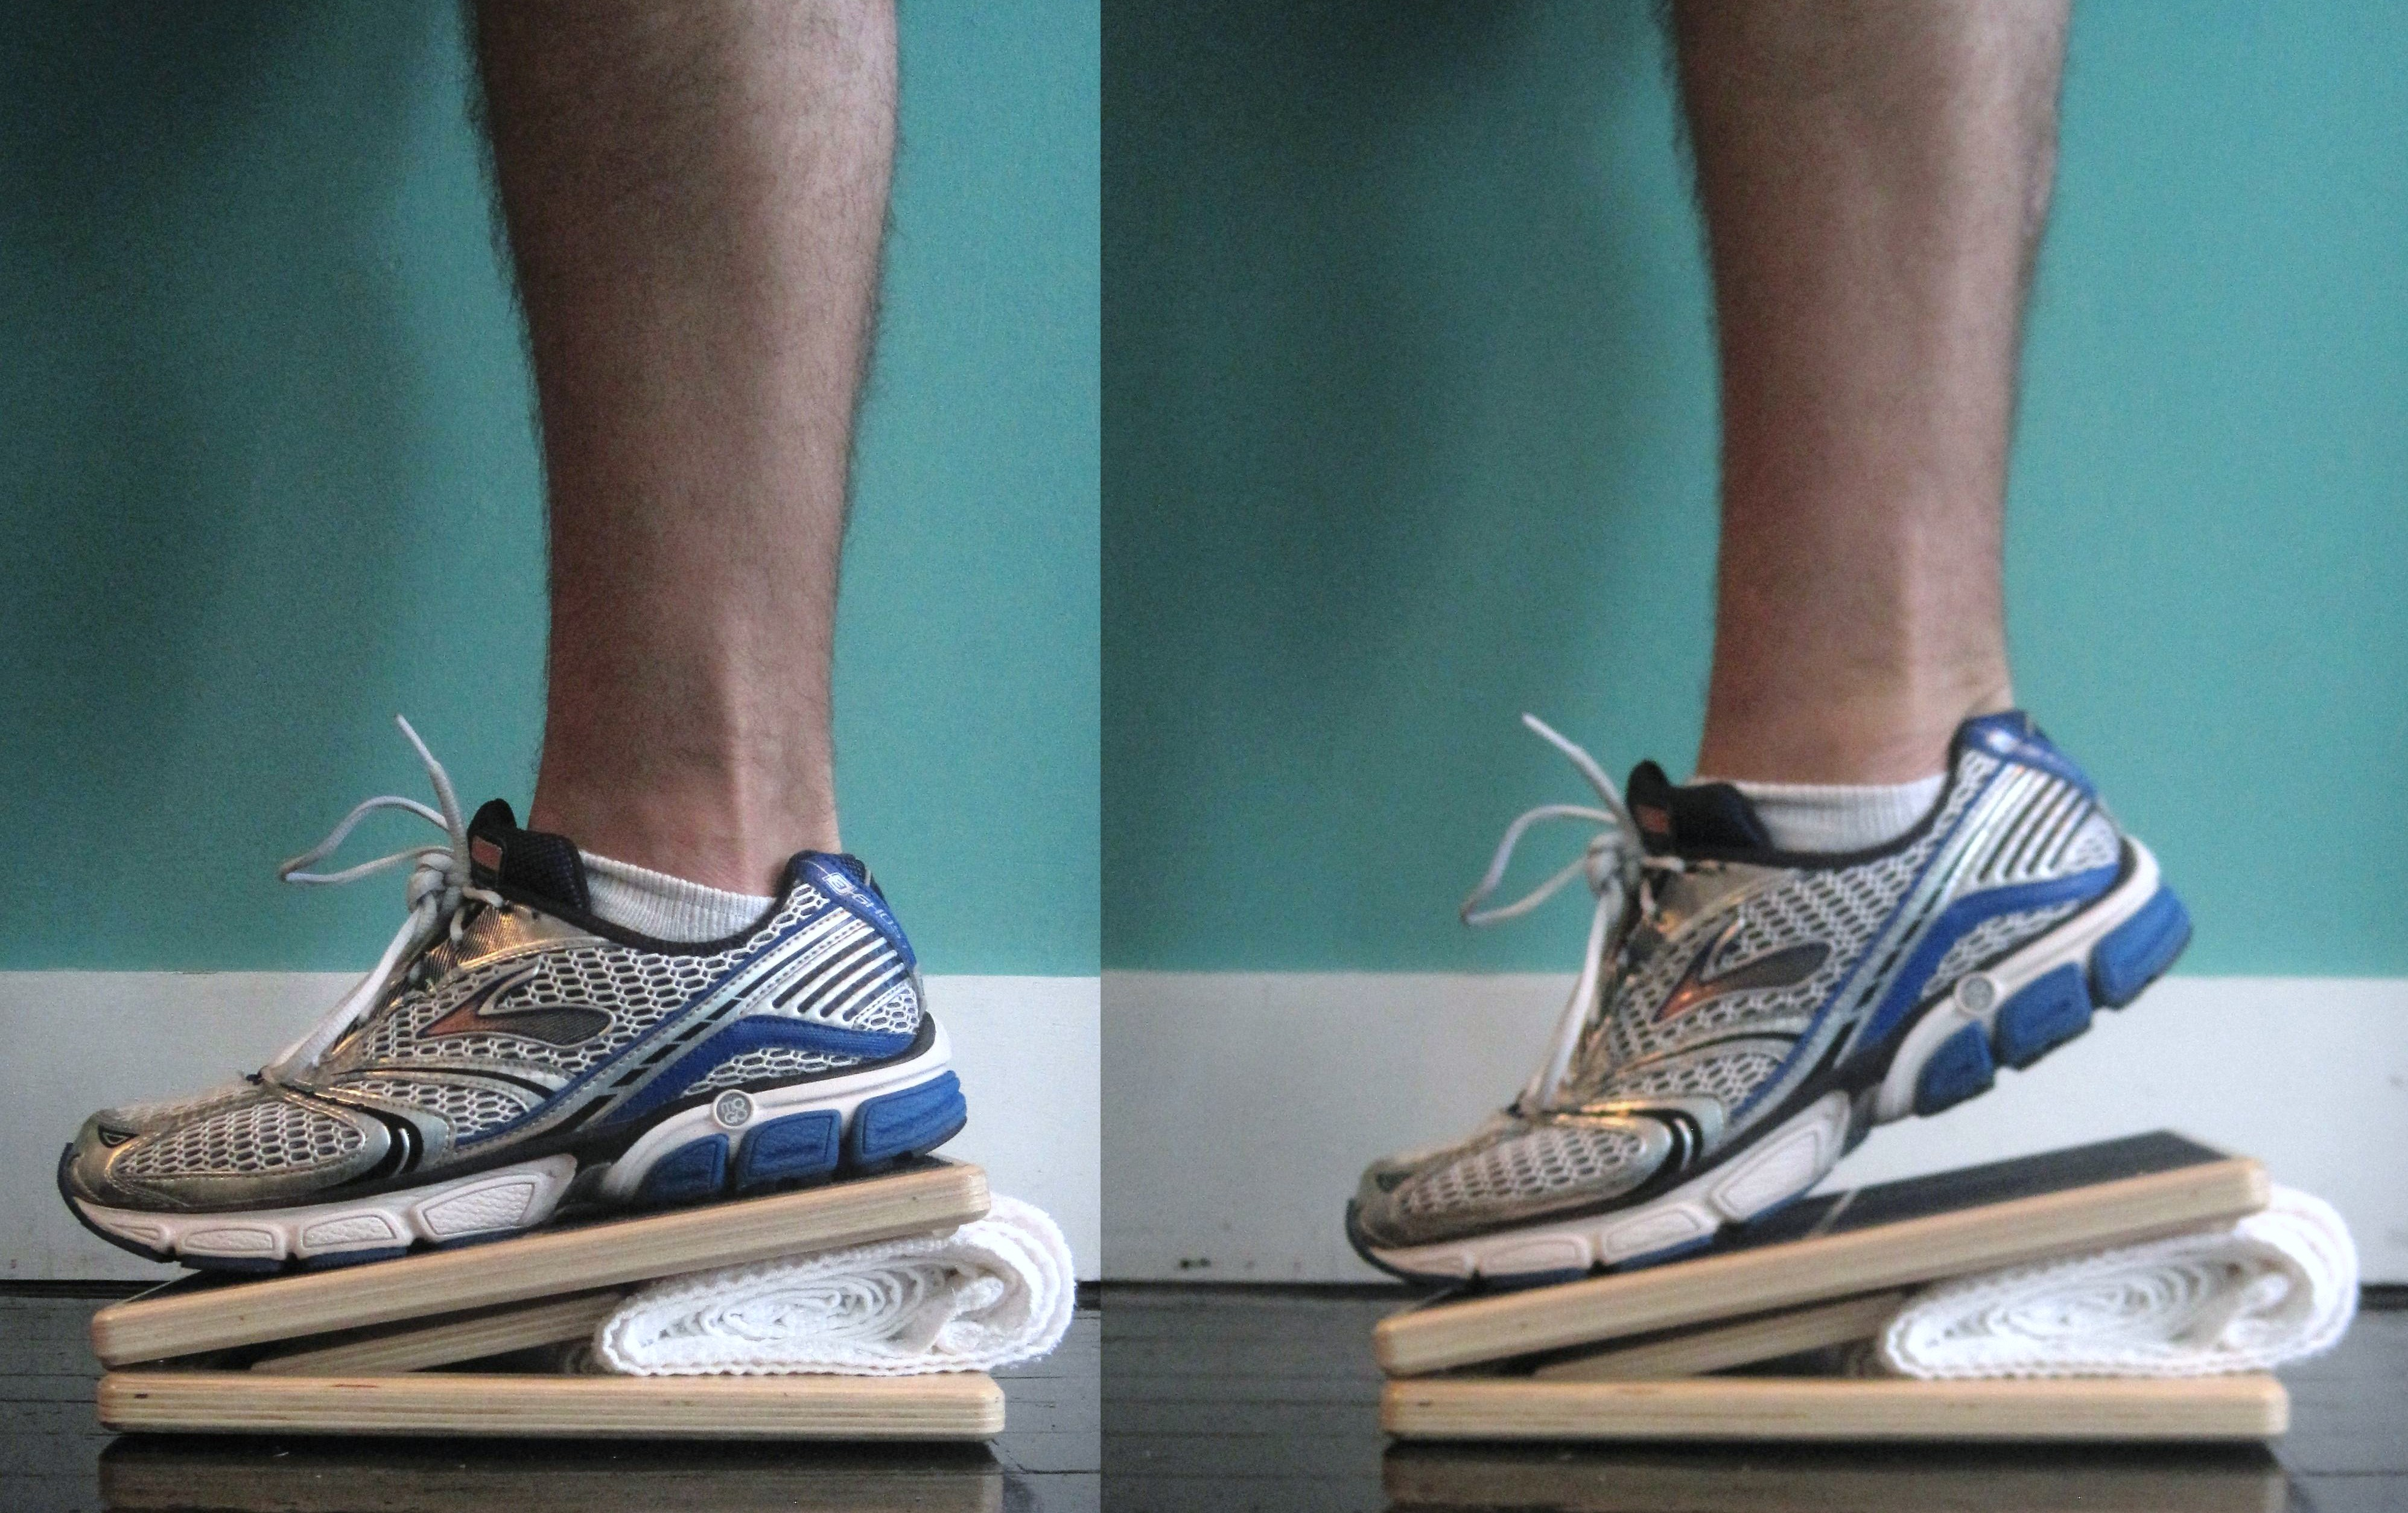 Achilles tendon rupture physical therapy - Decline